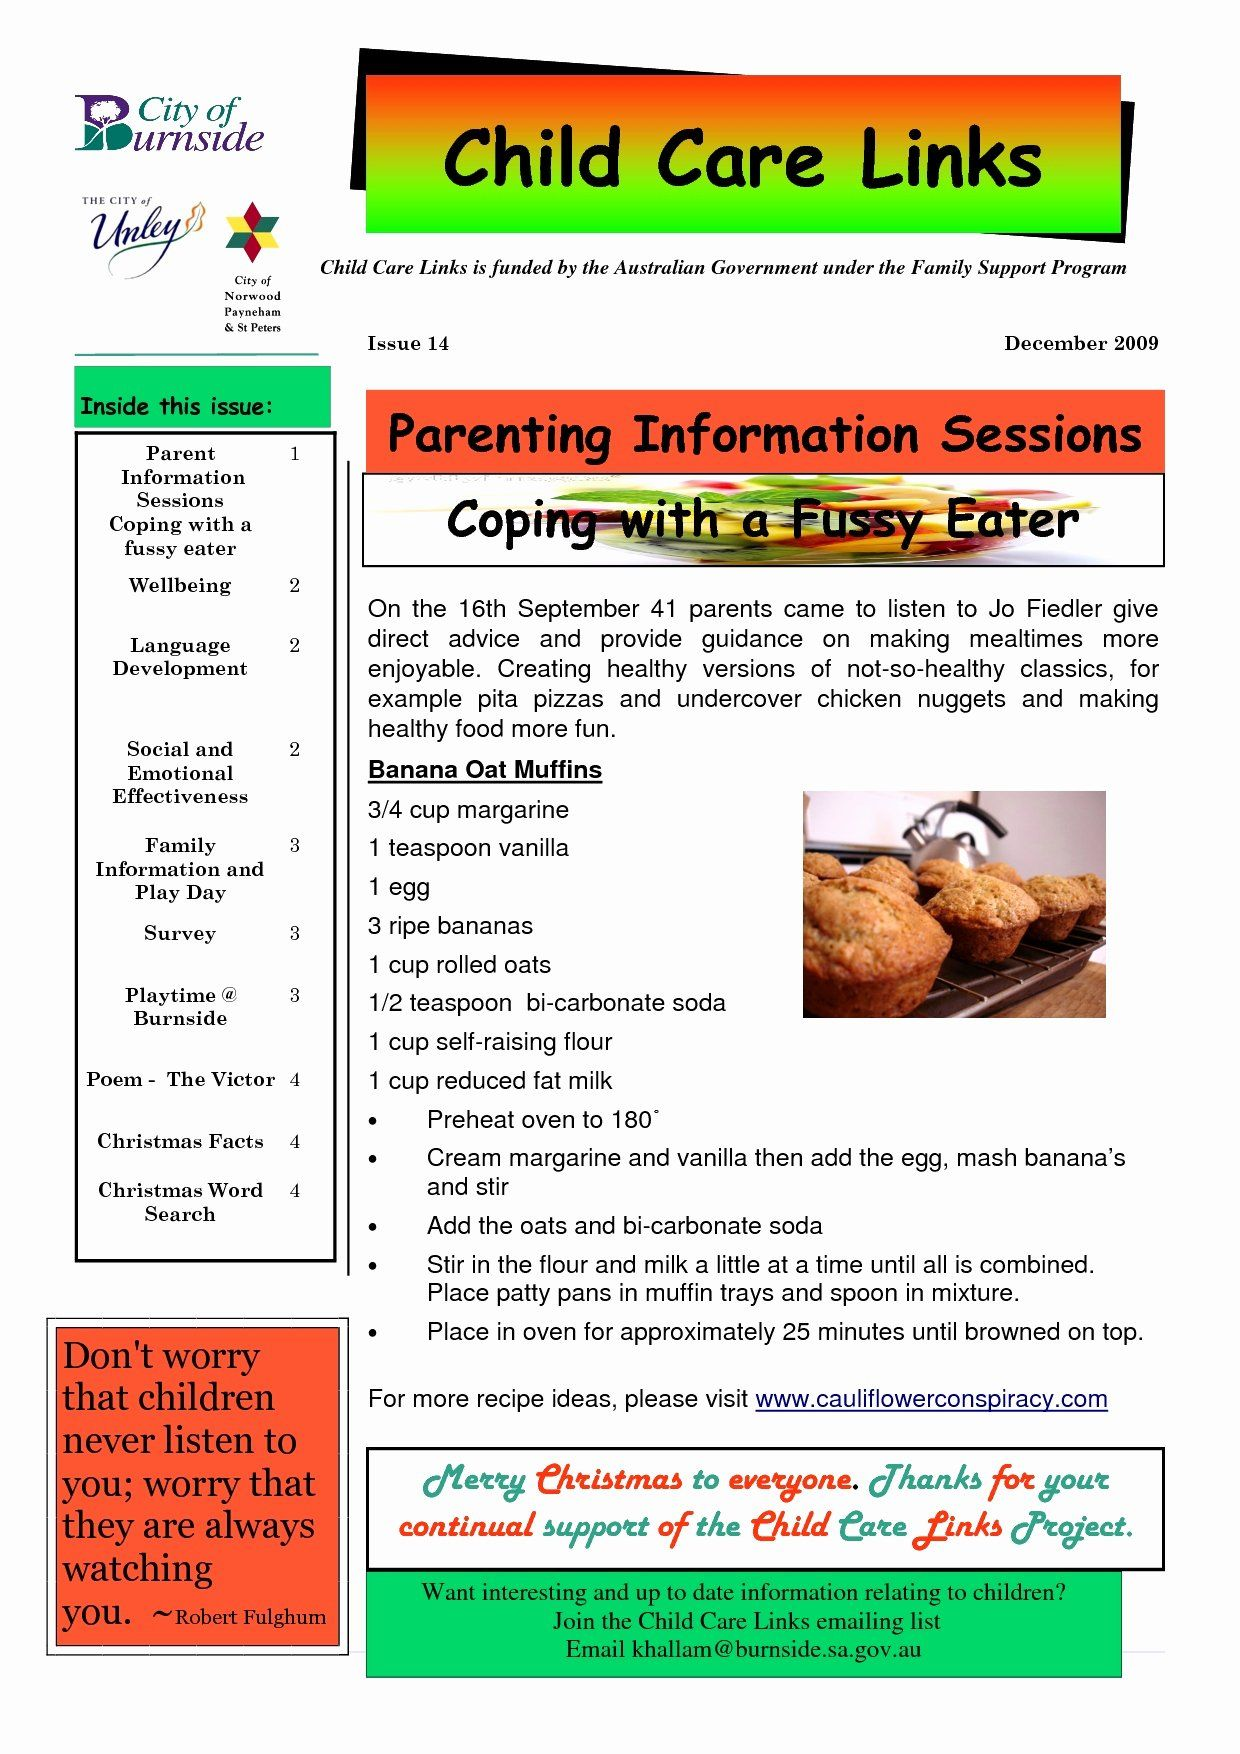 Child Care Newsletter Template Awesome 13 Inspirational Newsletter For Preschool P In 2020 Preschool Newsletter Templates Preschool Newsletter Newsletter Template Free